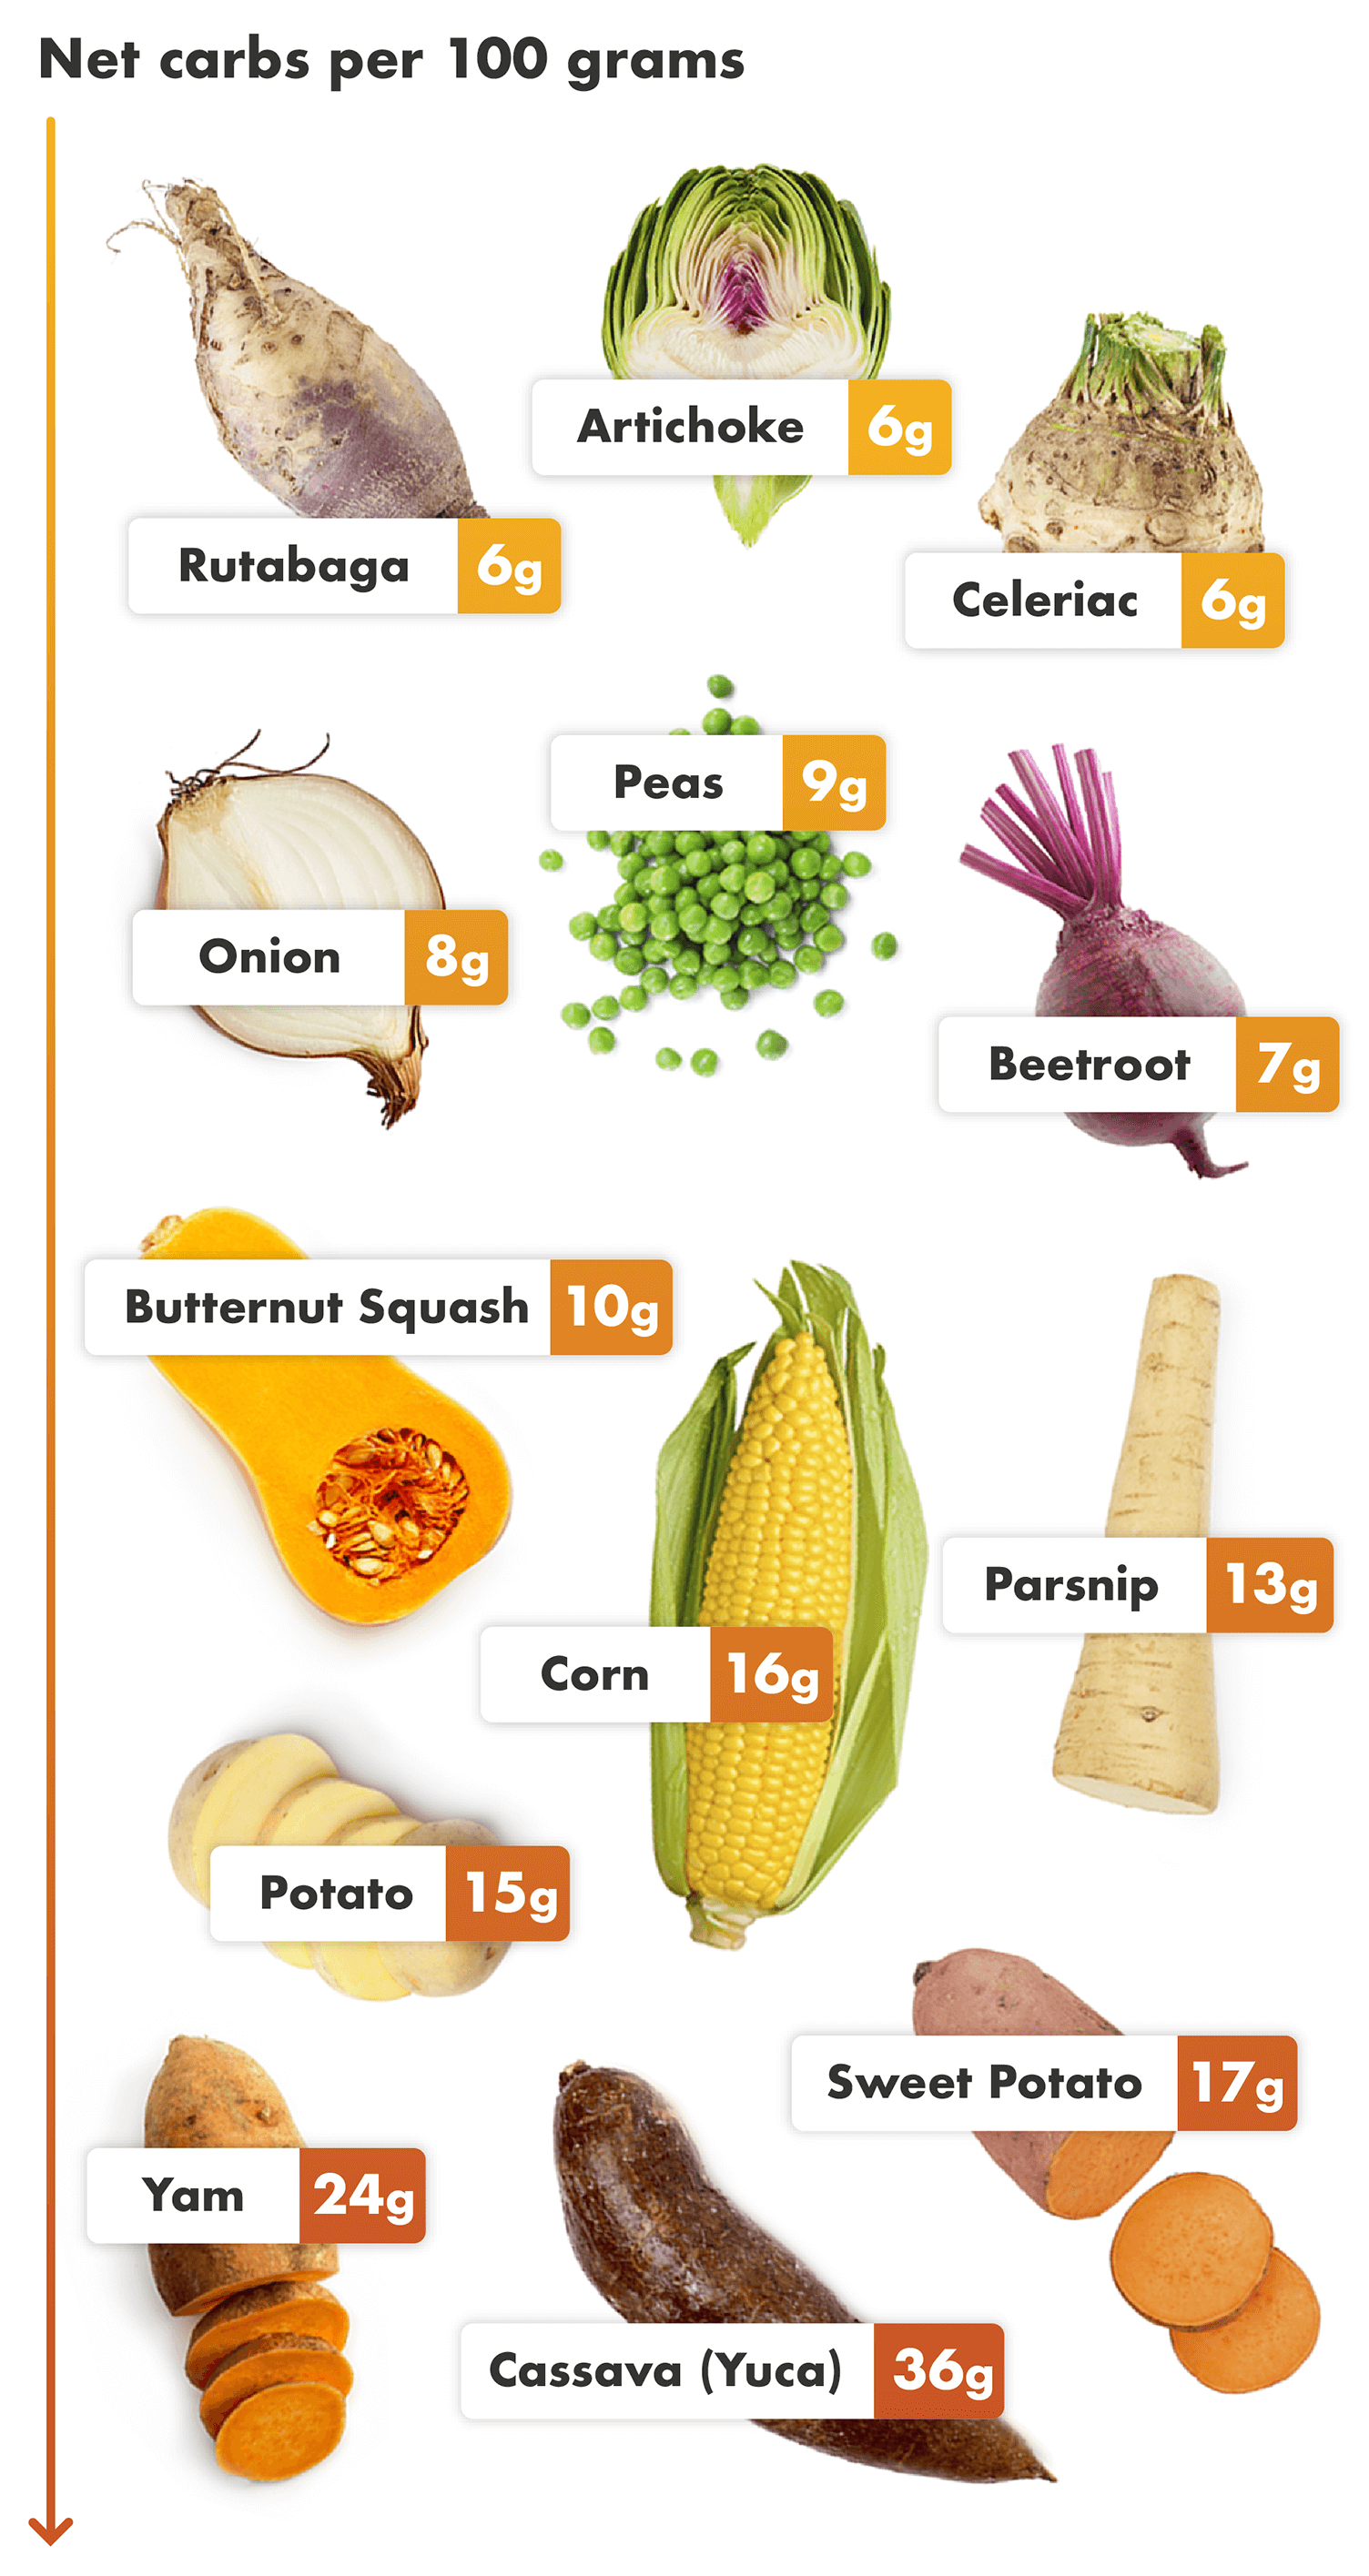 Layout of photos of the worst keto vegetables with their net carb count overlaid. They are arranged in order of the least to most net carbs per 100 grams serving, starting with the vegetables with the least amount of carbs on the left.